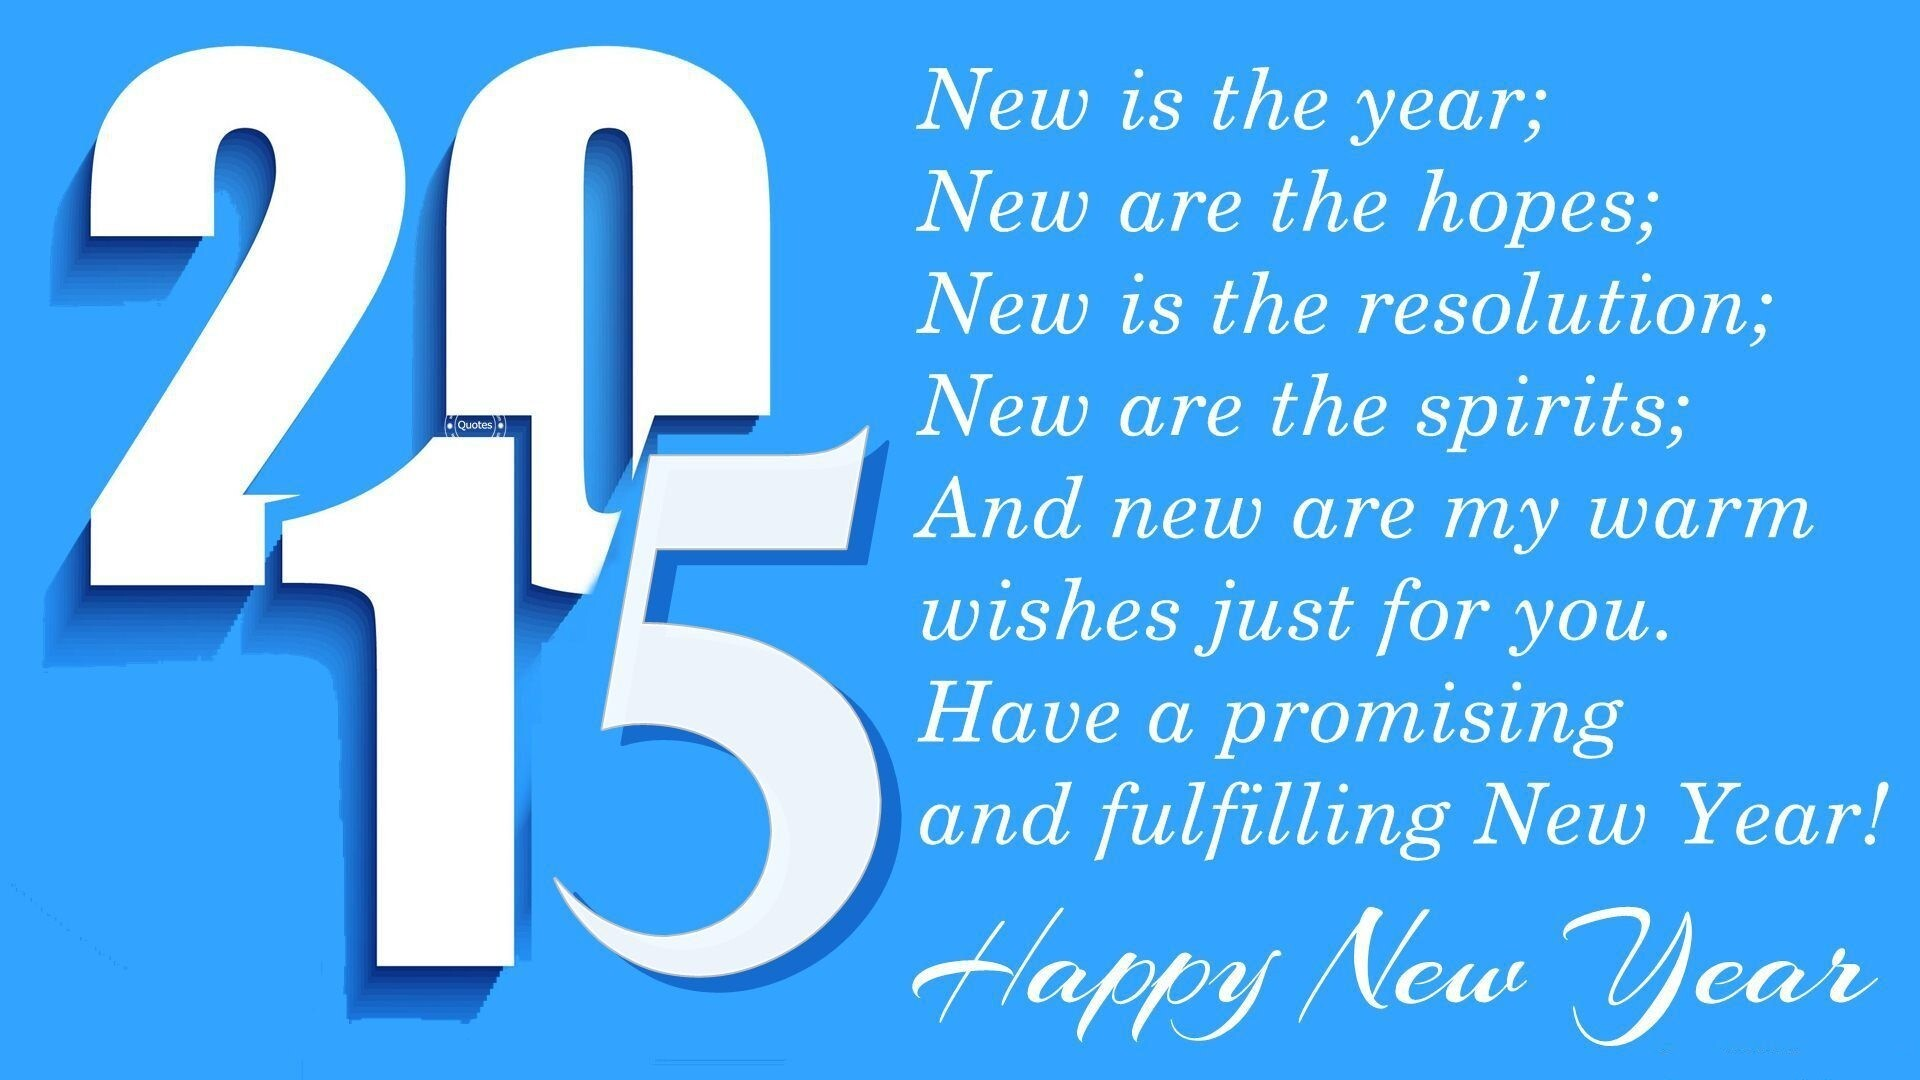 Happy New Year 2015 Quotes Greeting Hd Wallpaper Hd Wallpapers